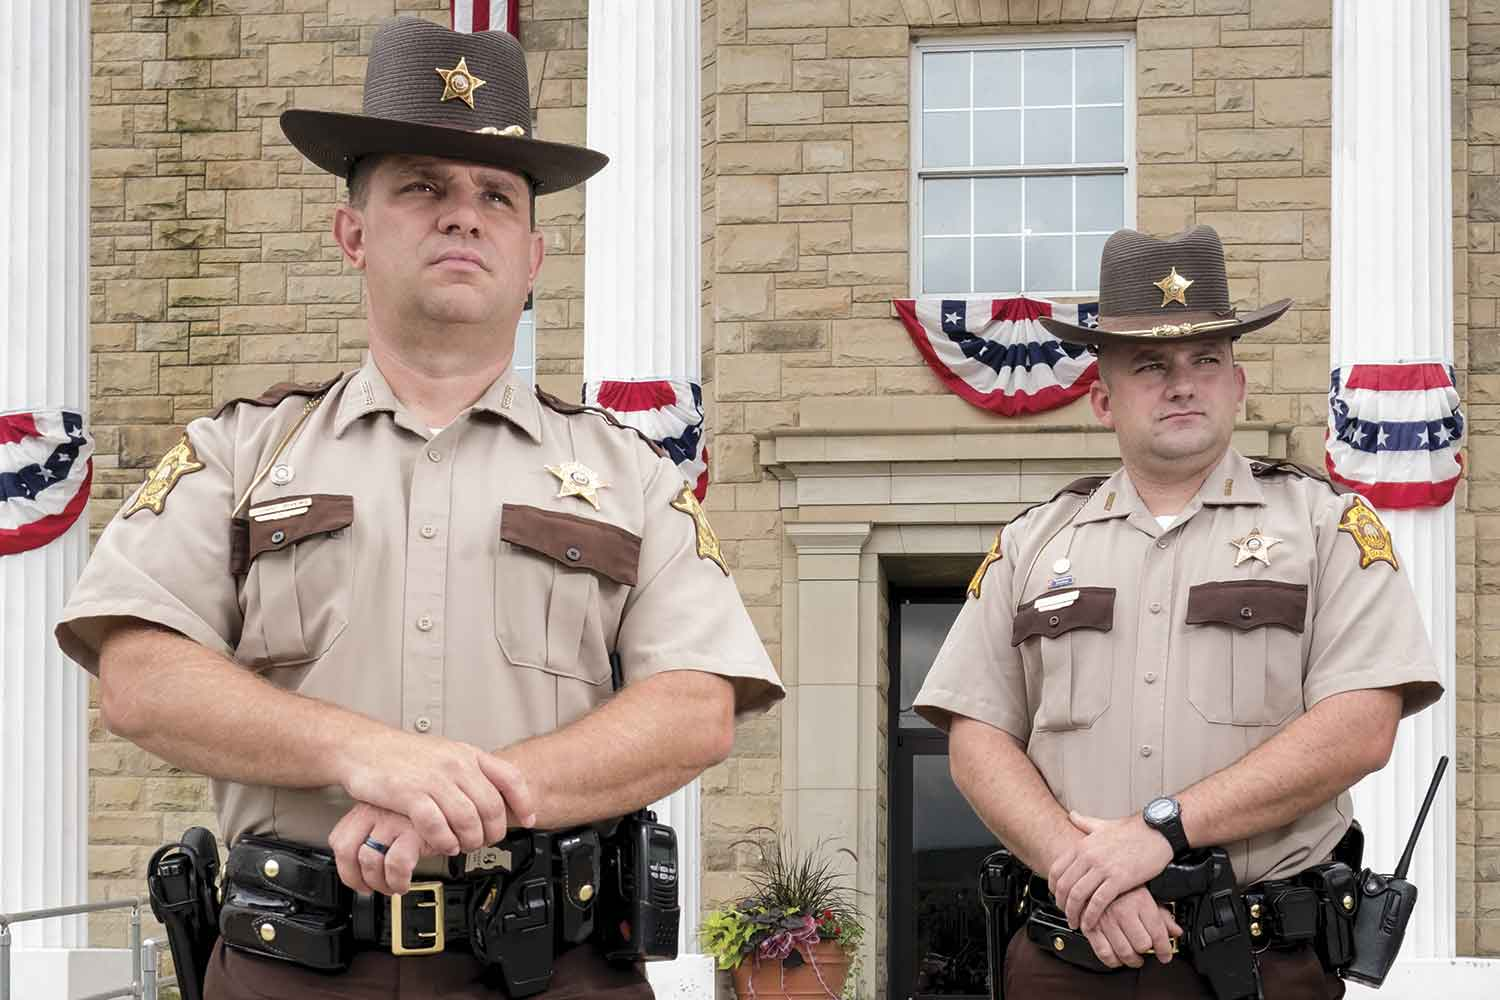 Lewis County Sheriff Johnny Bivens, left, pictured with Deputy Matt Ross in front of the courthouse, said his four deputies provide 24/7 coverage for the residents of the northeastern Kentucky county that boarders Ohio. (Photo by Jim Robertson)